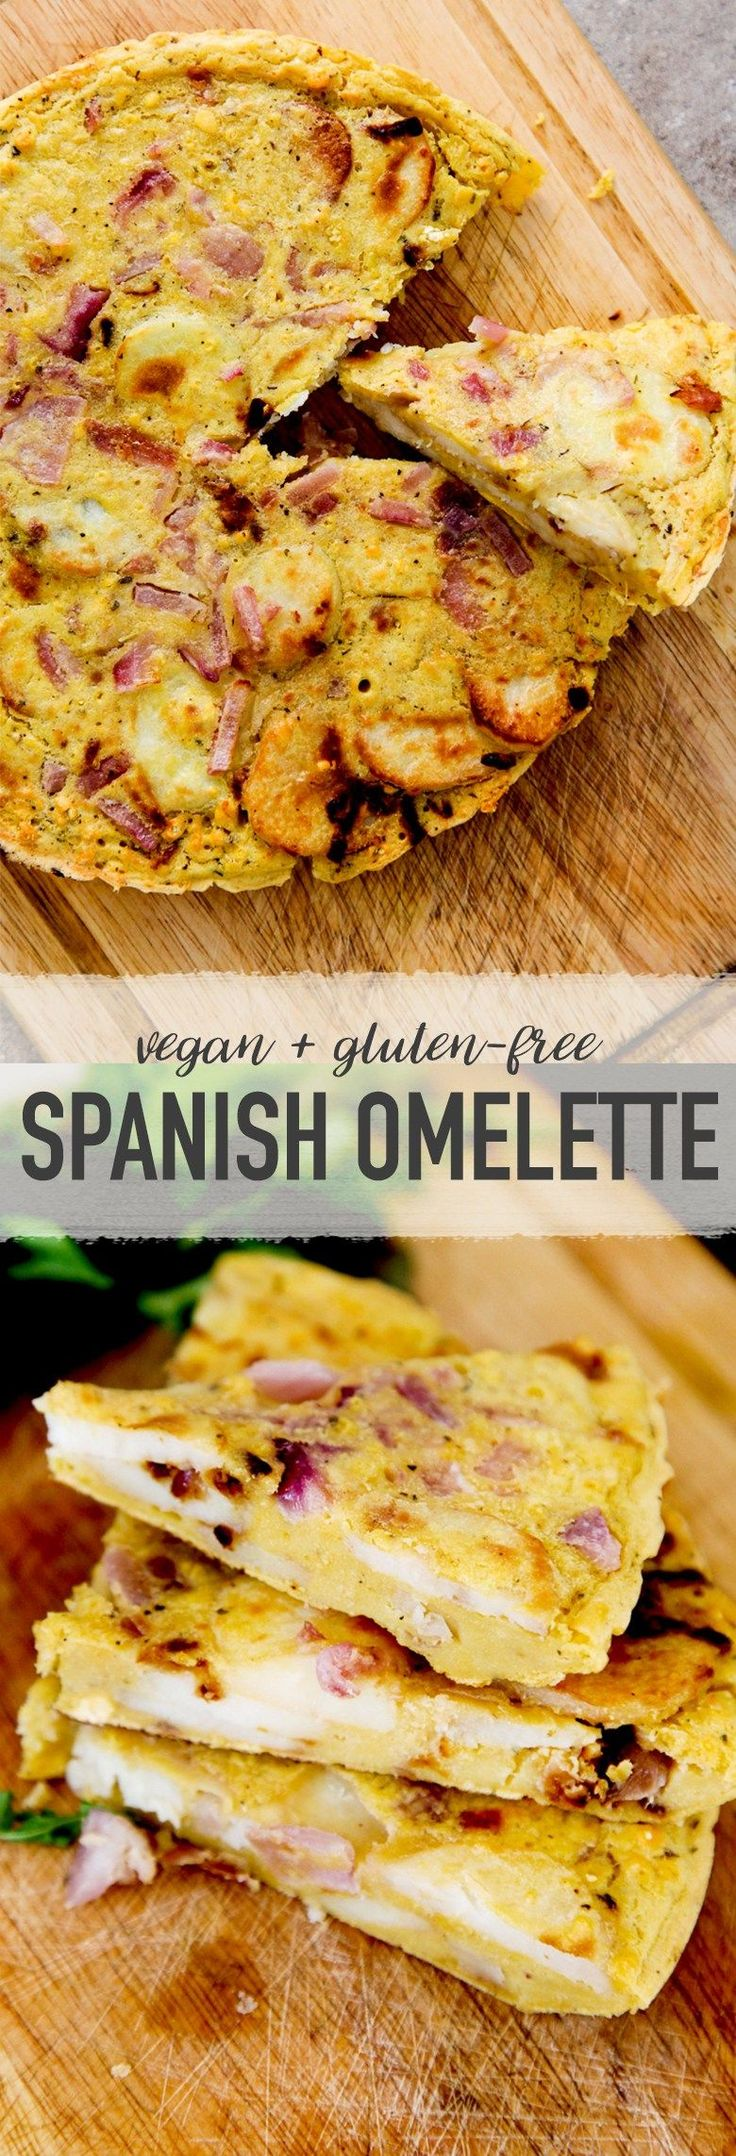 Don't miss this vegan spanish omelette—made from chickpea flour! It's so simple, while also being delicious and comforting!